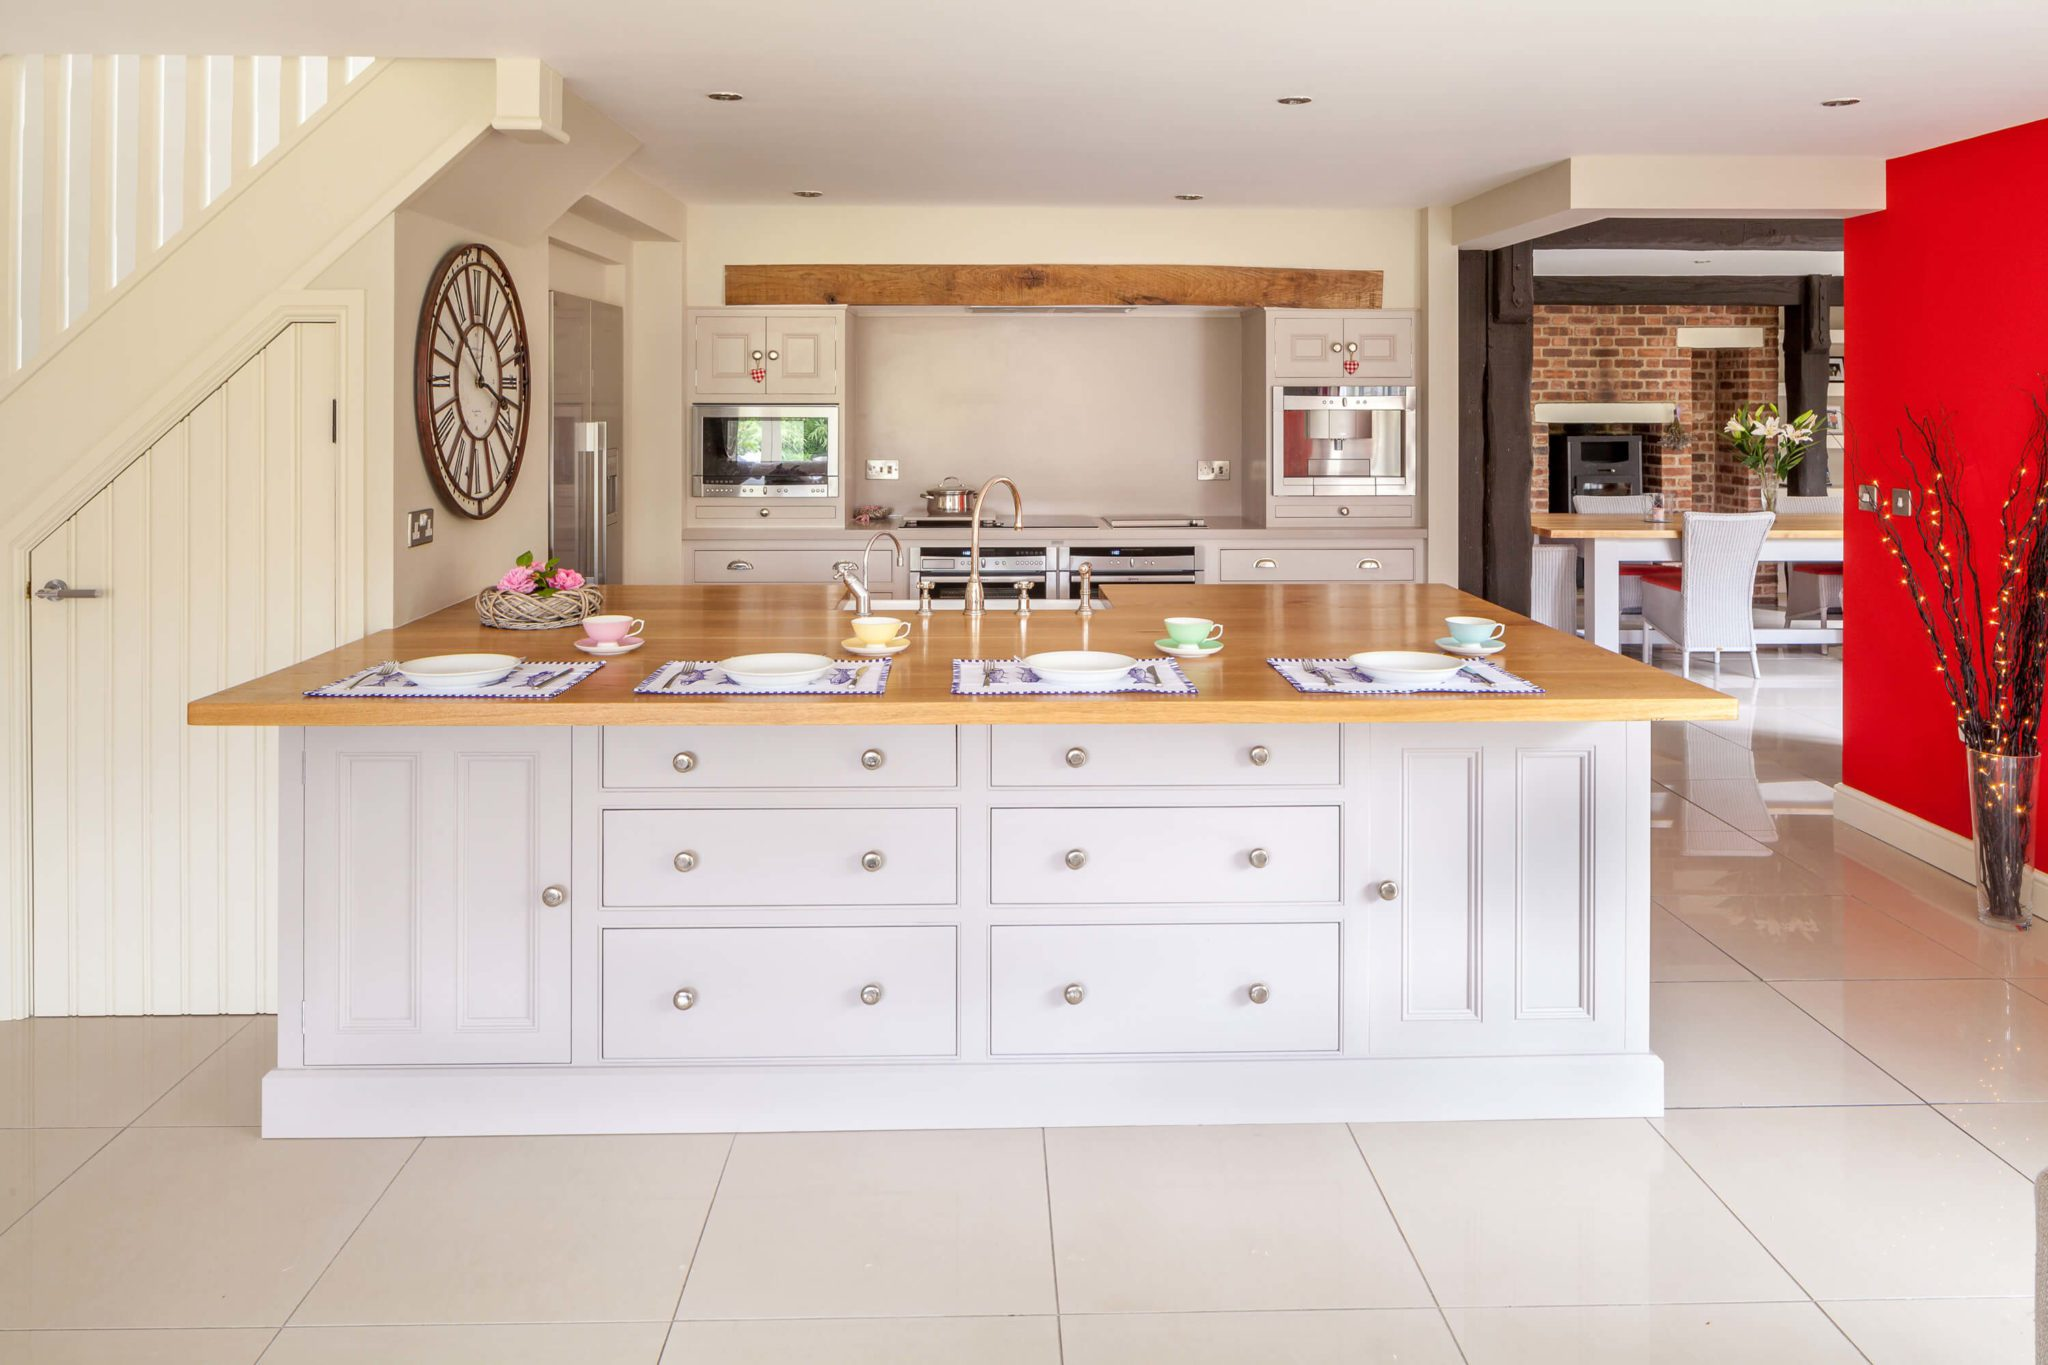 Luxury Kitchen Furniture 2 - Hill Farm Furniture